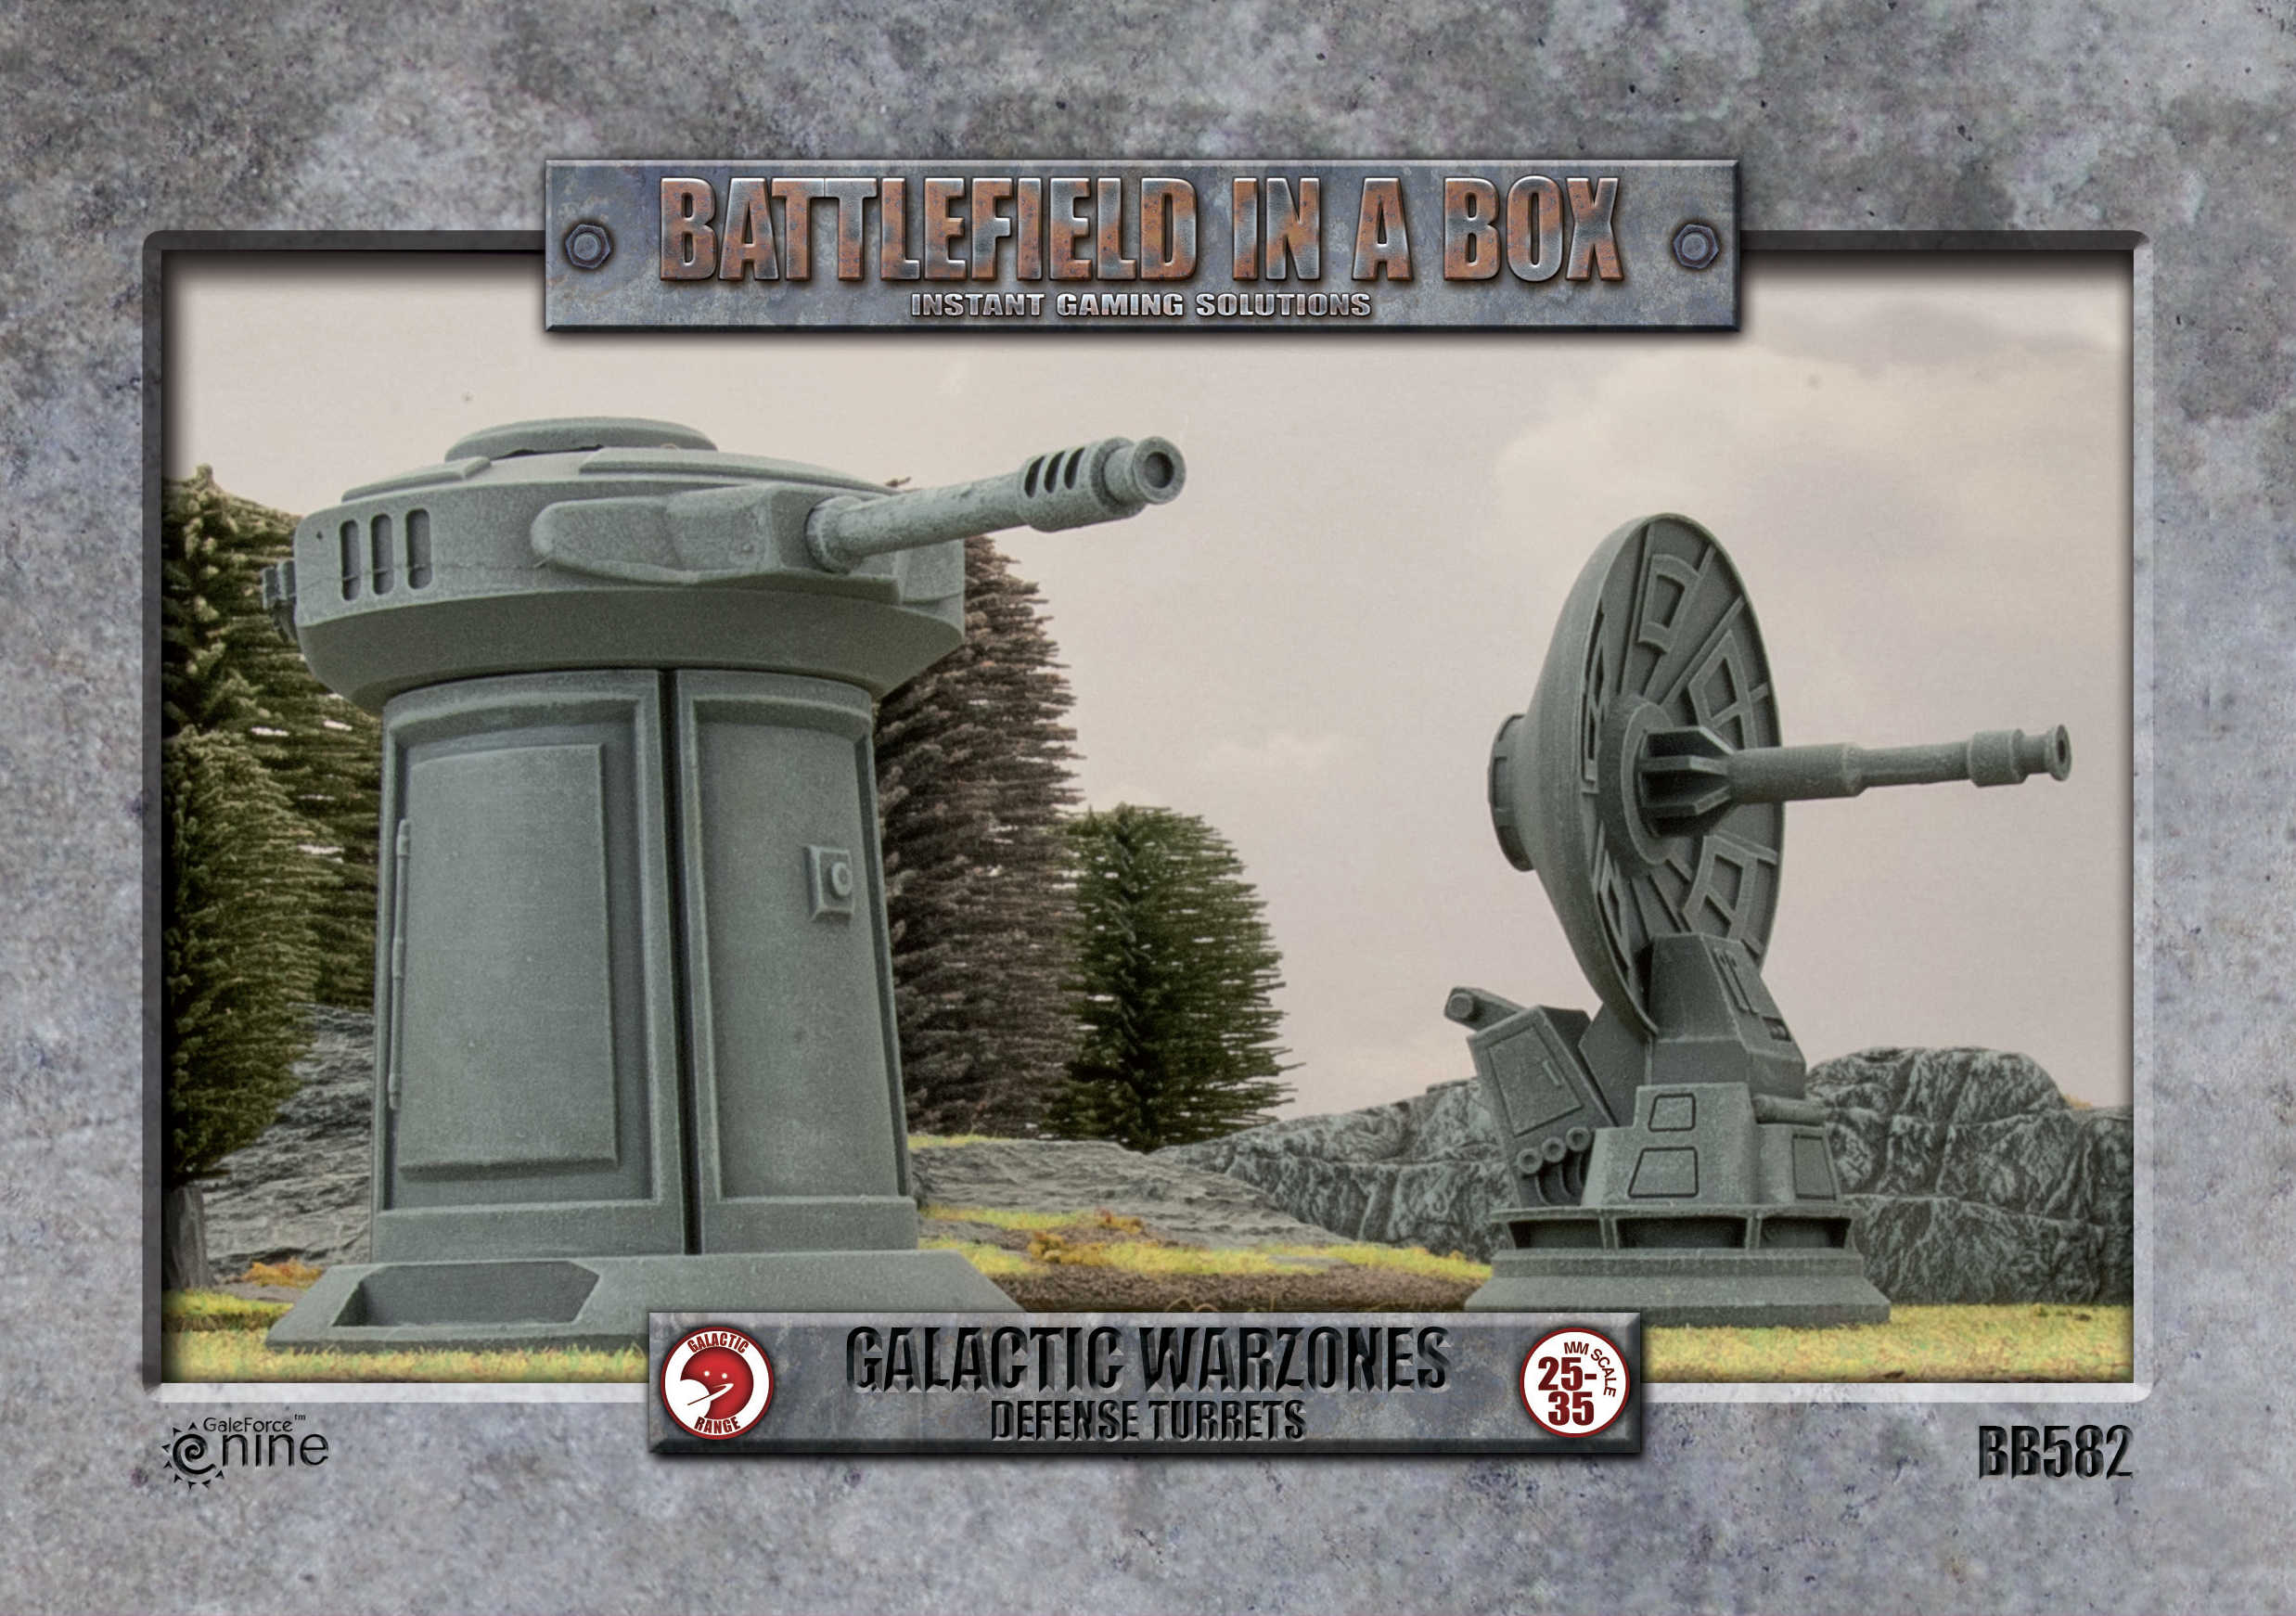 Gale Force Nine Reveal New Battlefield In A Box Galactic